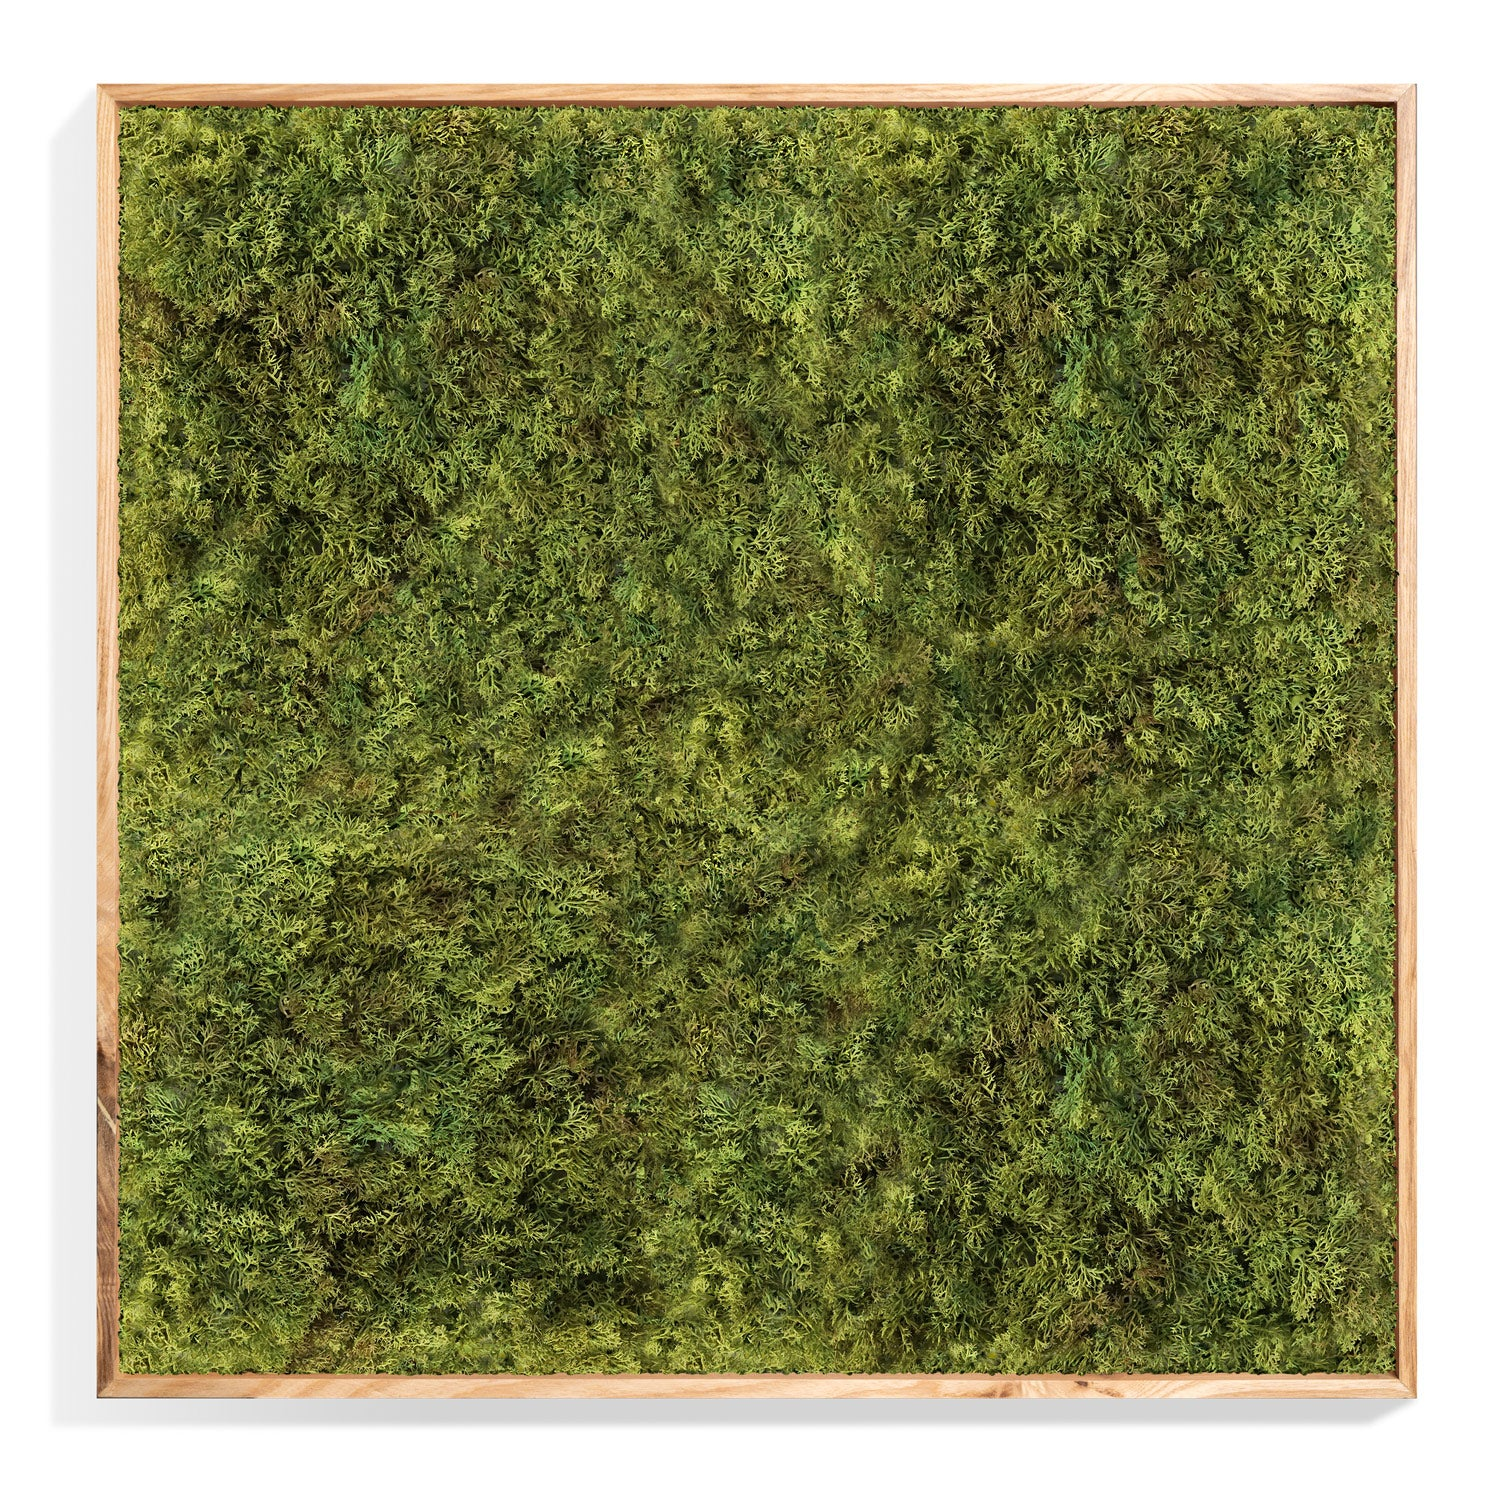 Green Wall: Permanent Botanical Textured Moss in a shadow box. (front view)